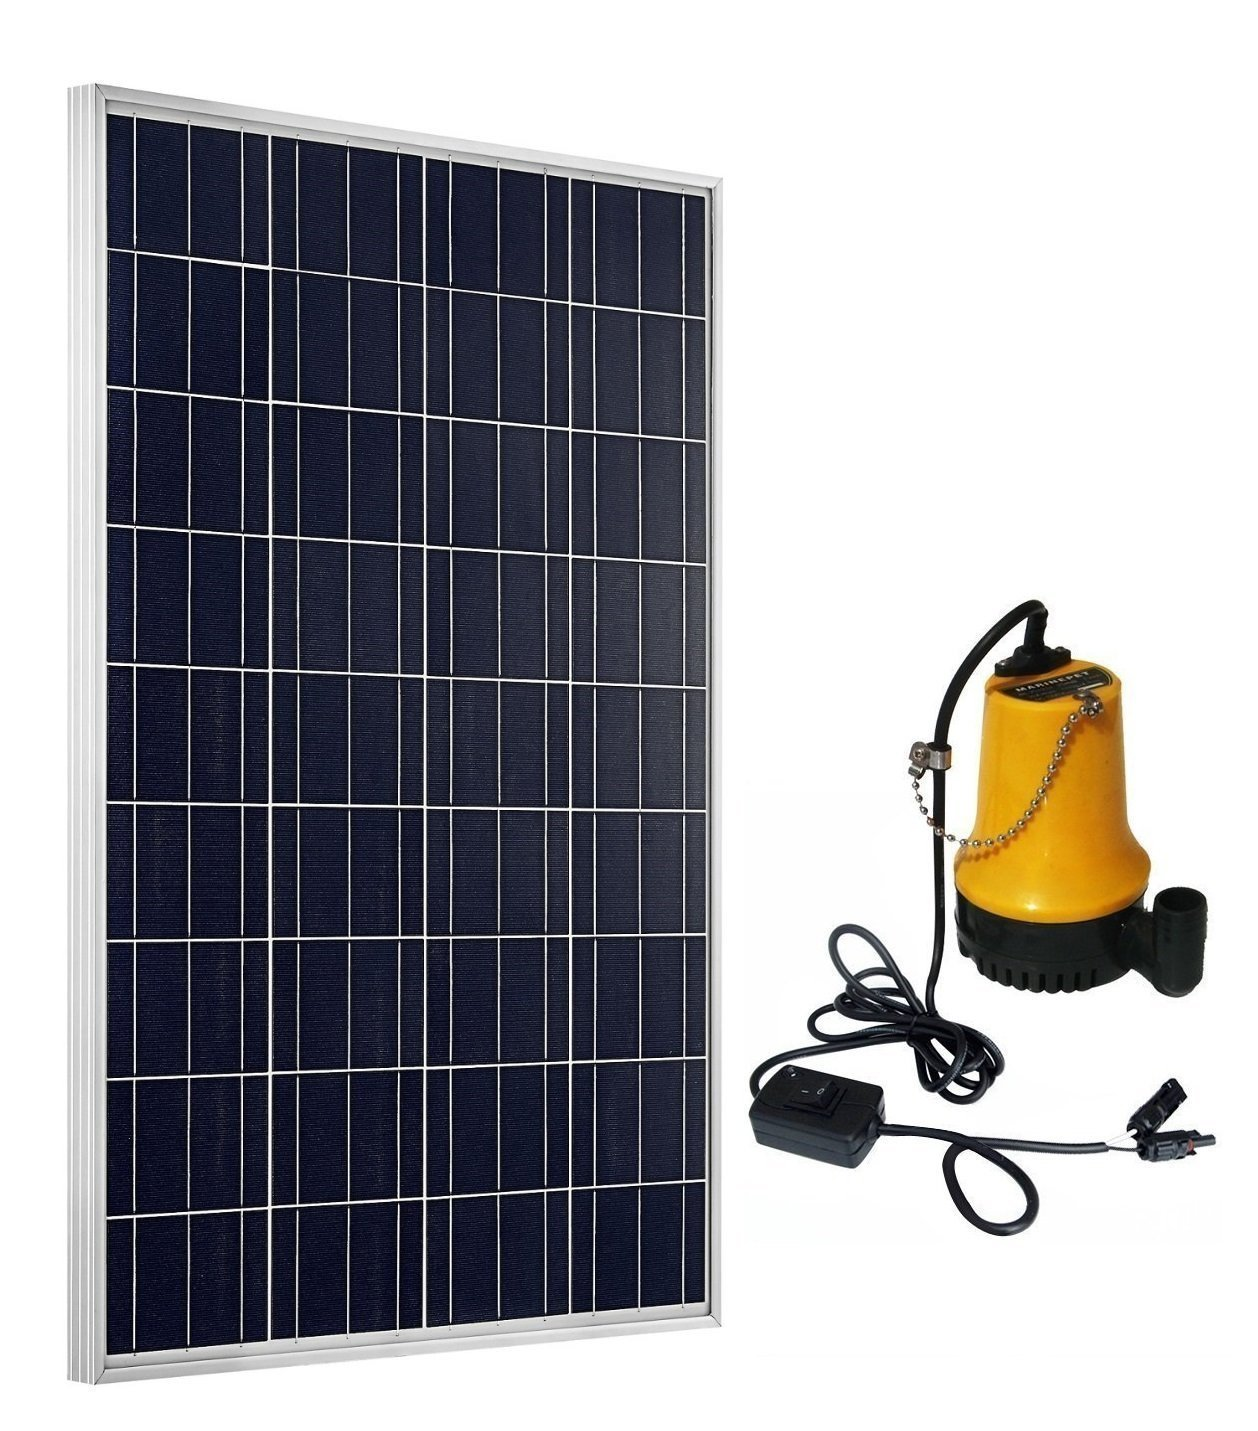 Solar Powered Pump Kit 100W Solar Panel with Water Pump for Garden Pond Fountain Pool solar powered mini water pump fountain pool garden watering black